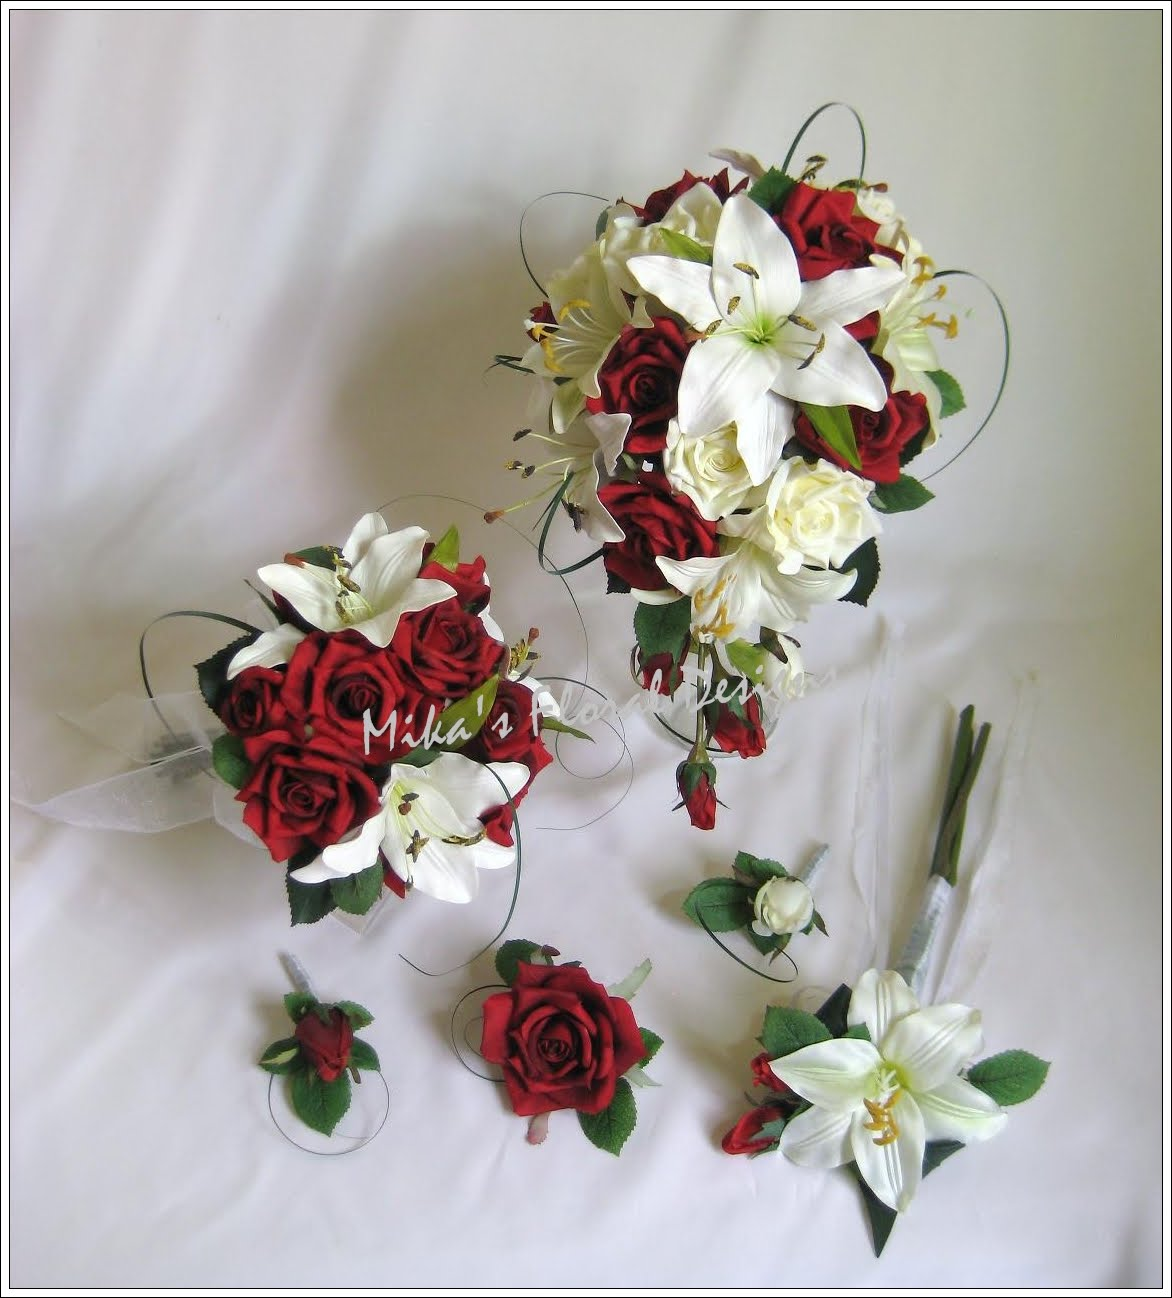 Wedding Flower Arrangements: Artificial Wedding Flowers And Bouquets